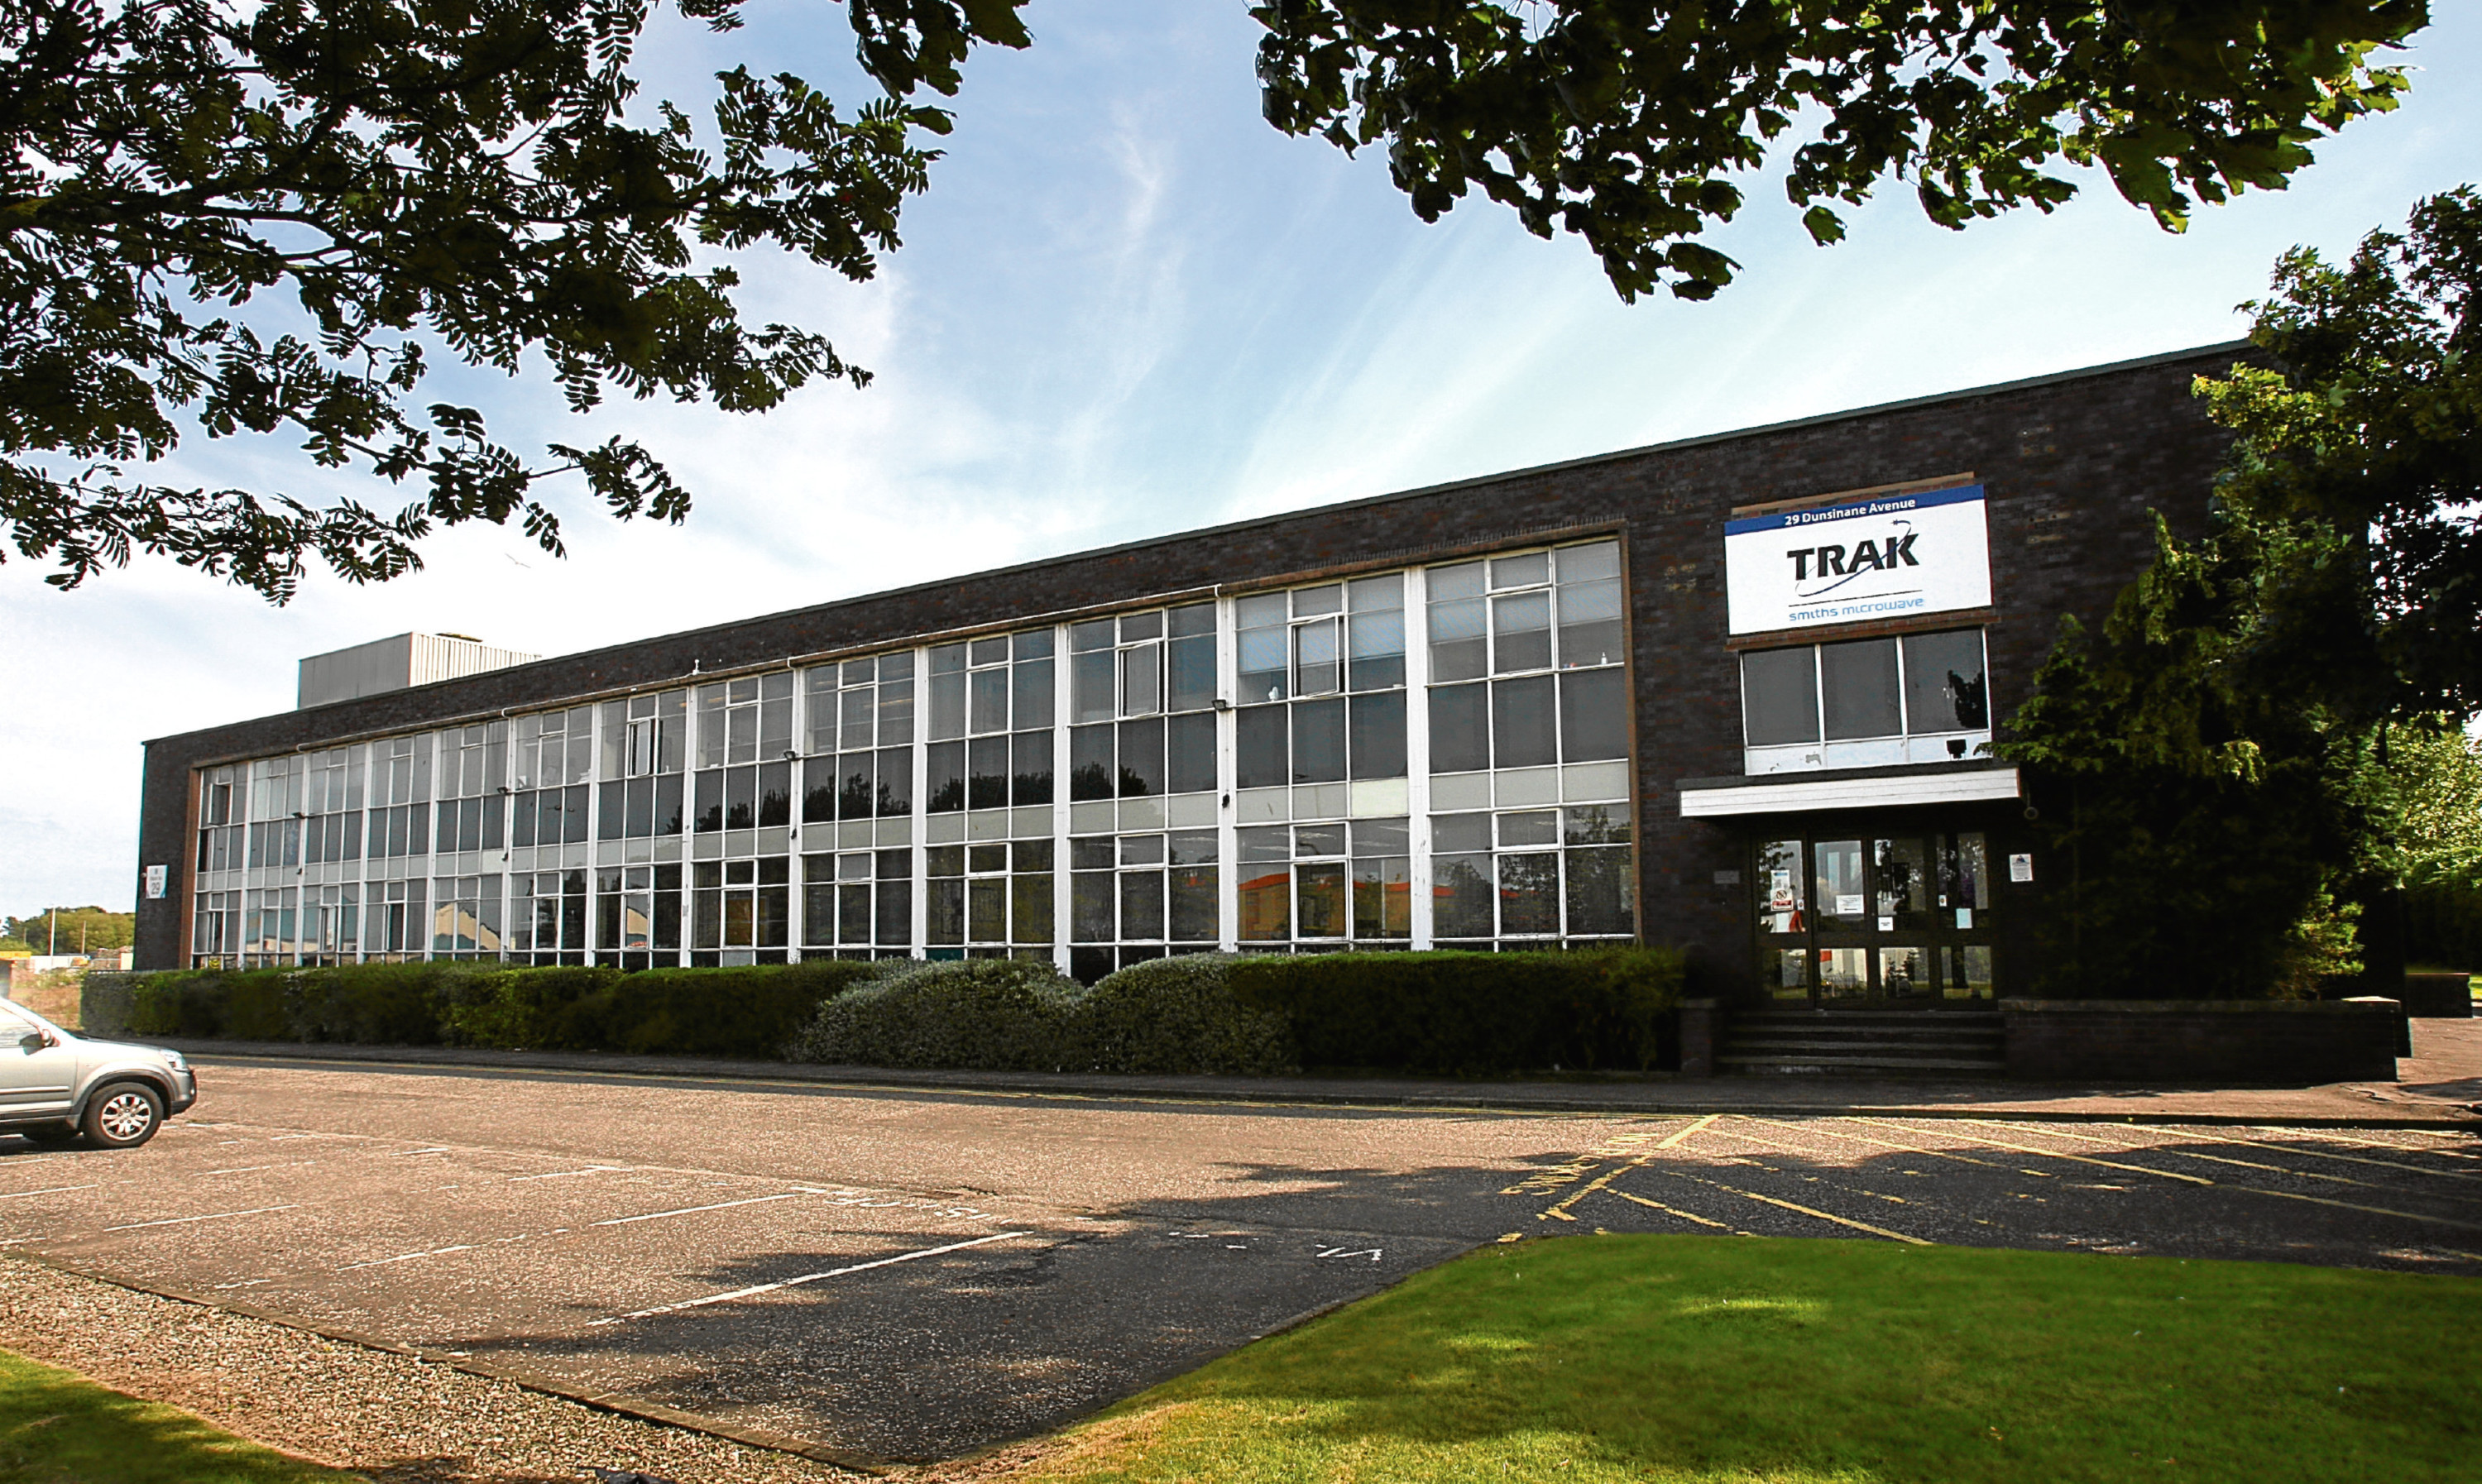 Trak Microwave's premises at Dunsinane Industrial Estate in Dundee